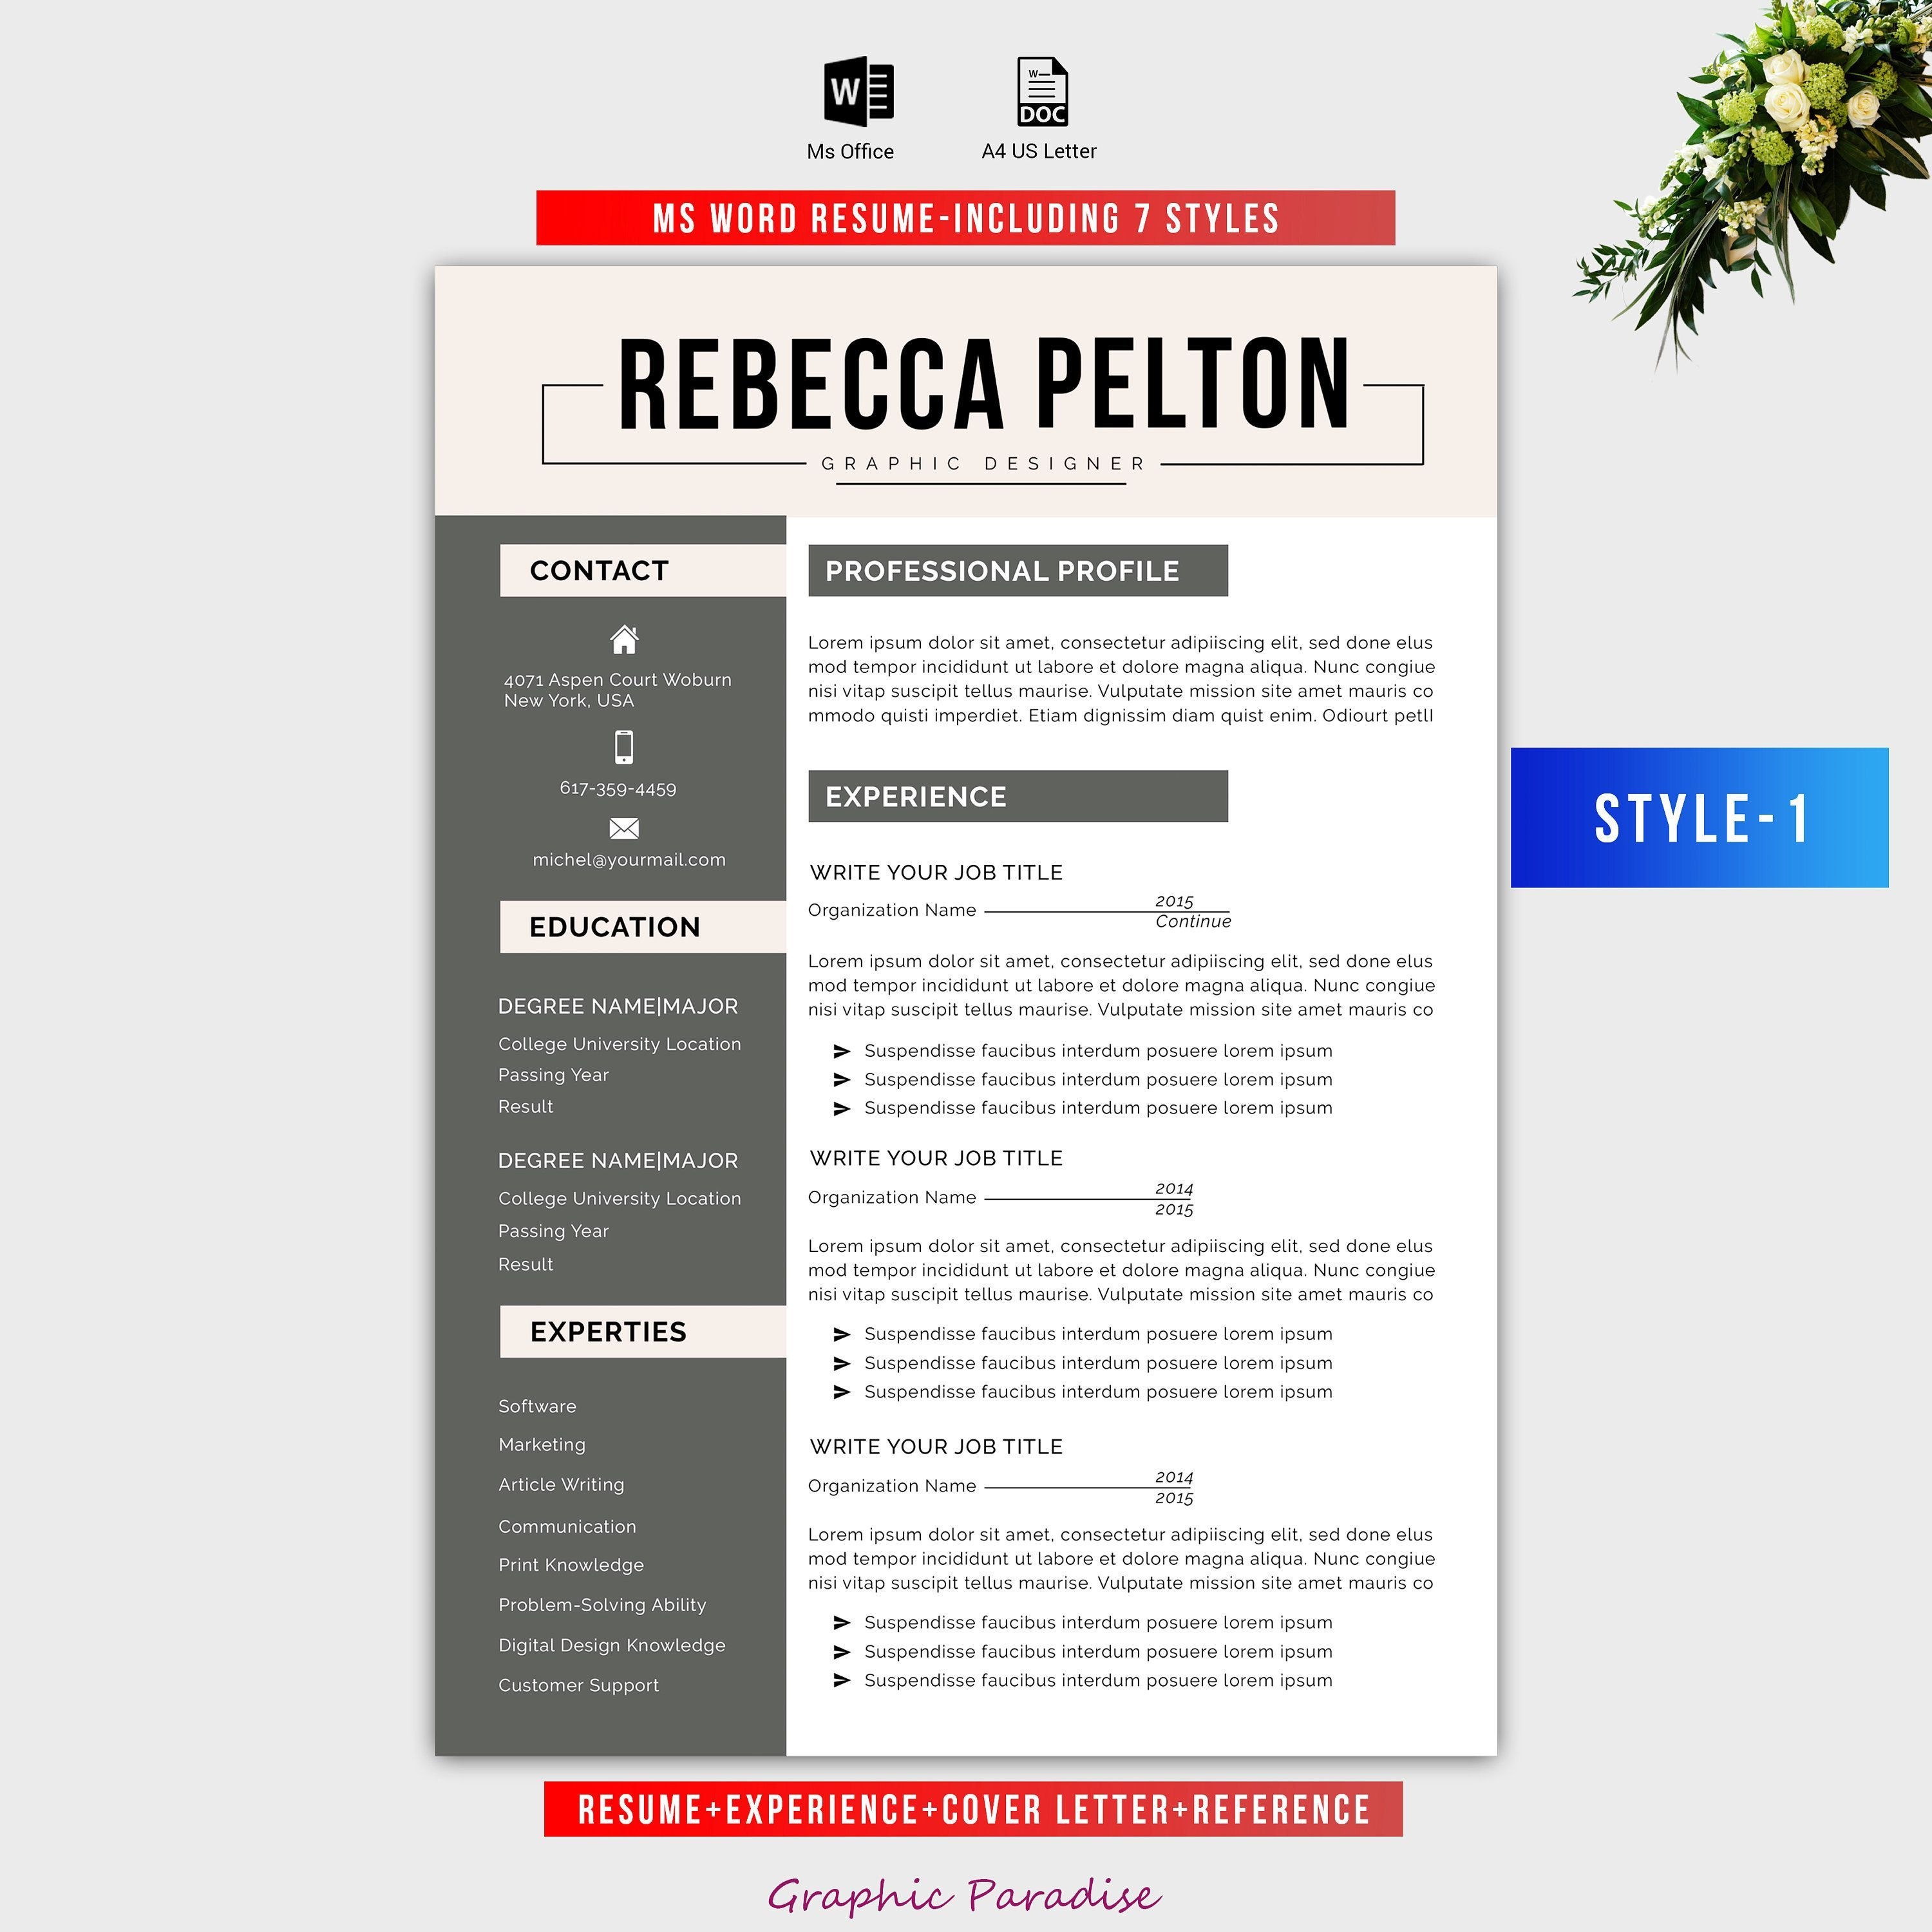 7 style resume template|professional resume template|resume template